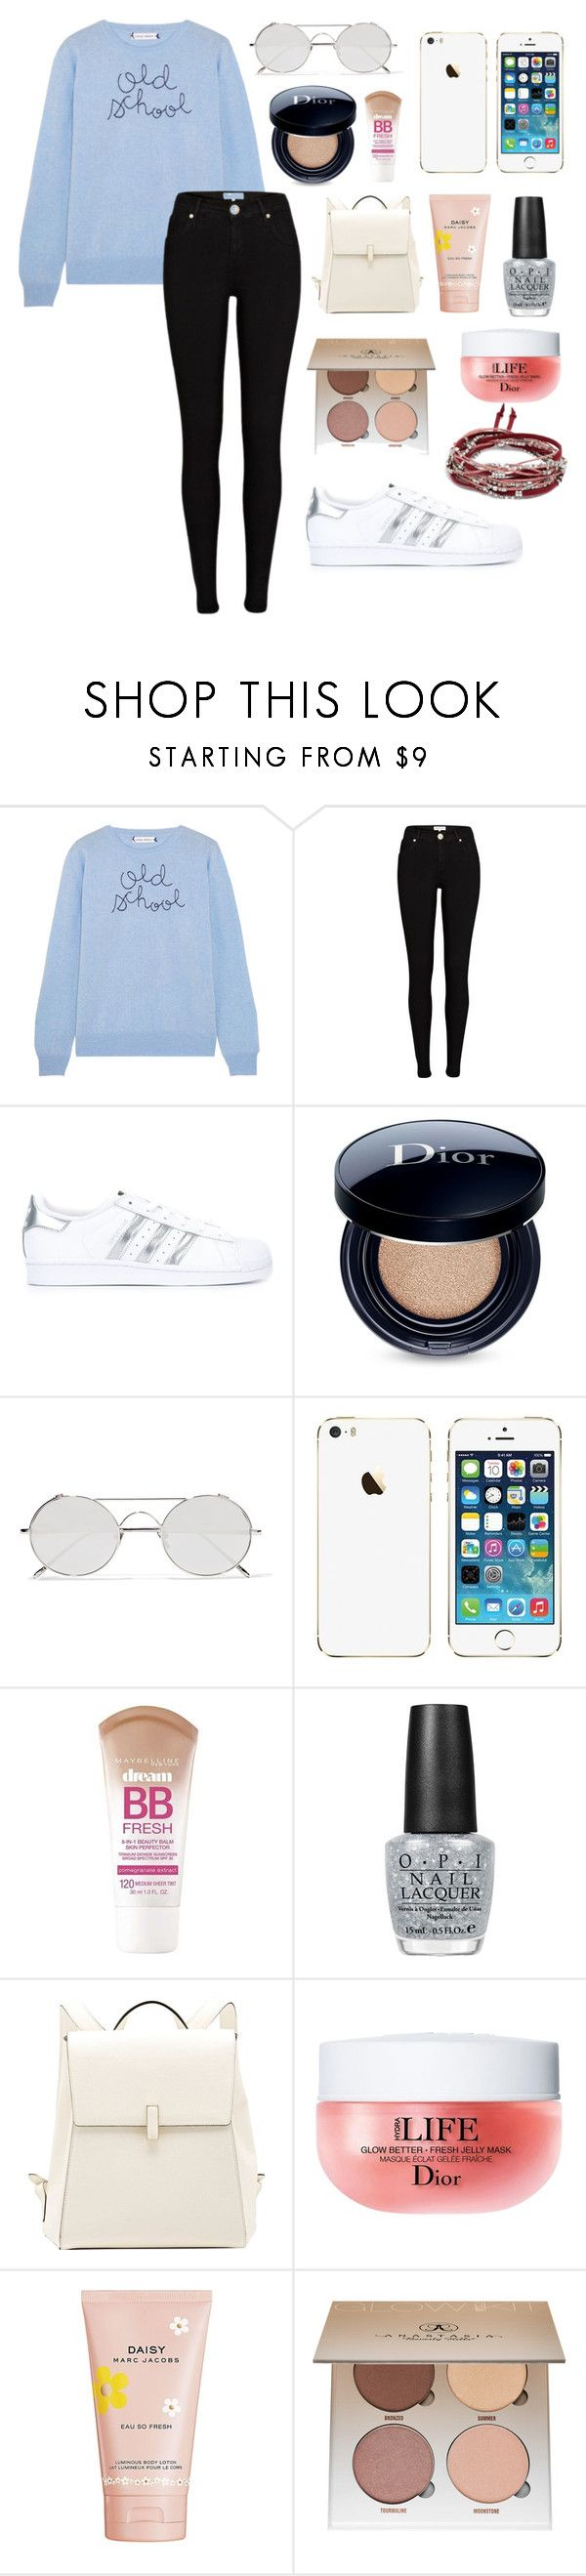 """Baby, we found love right where we are."" by alyssa-wilsonn ❤ liked on Polyvore featuring Lingua Franca, River Island, adidas Originals, Christian Dior, Linda Farrow, Maybelline, OPI, Valextra, Marc Jacobs and Anastasia Beverly Hills"